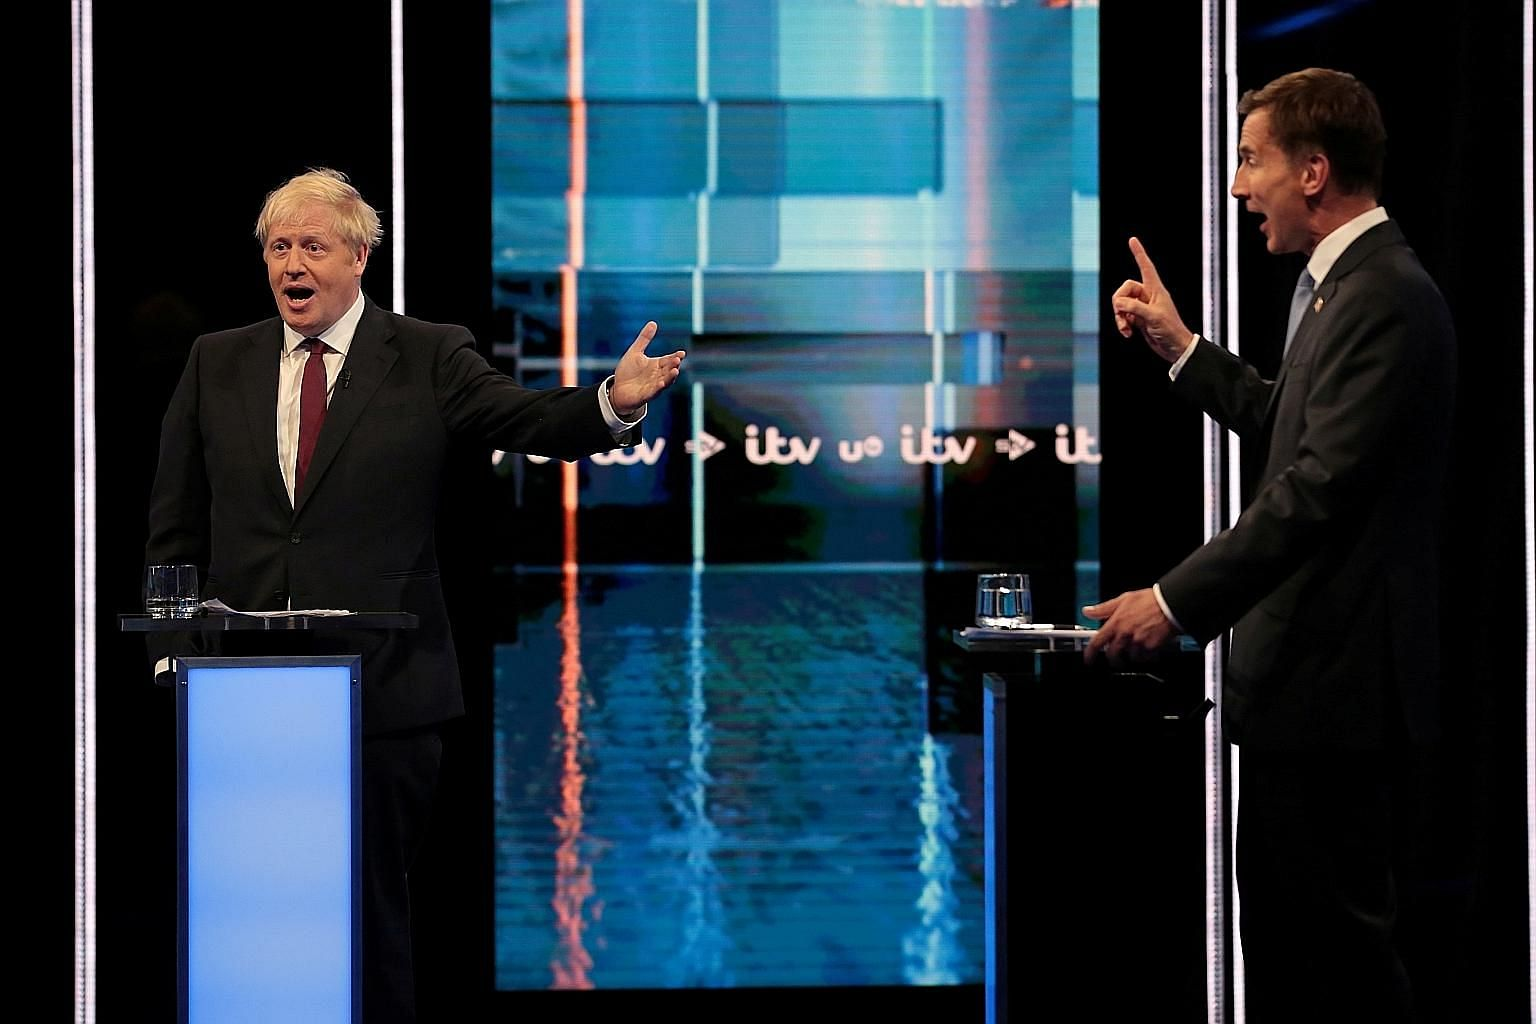 Mr Boris Johnson (left) questioned Mr Jeremy Hunt's commitment to leaving the European Union on Oct 31, while Mr Hunt criticised Mr Johnson for relying on what he said was nothing more than optimism to win a deal, in a TV debate just two weeks before